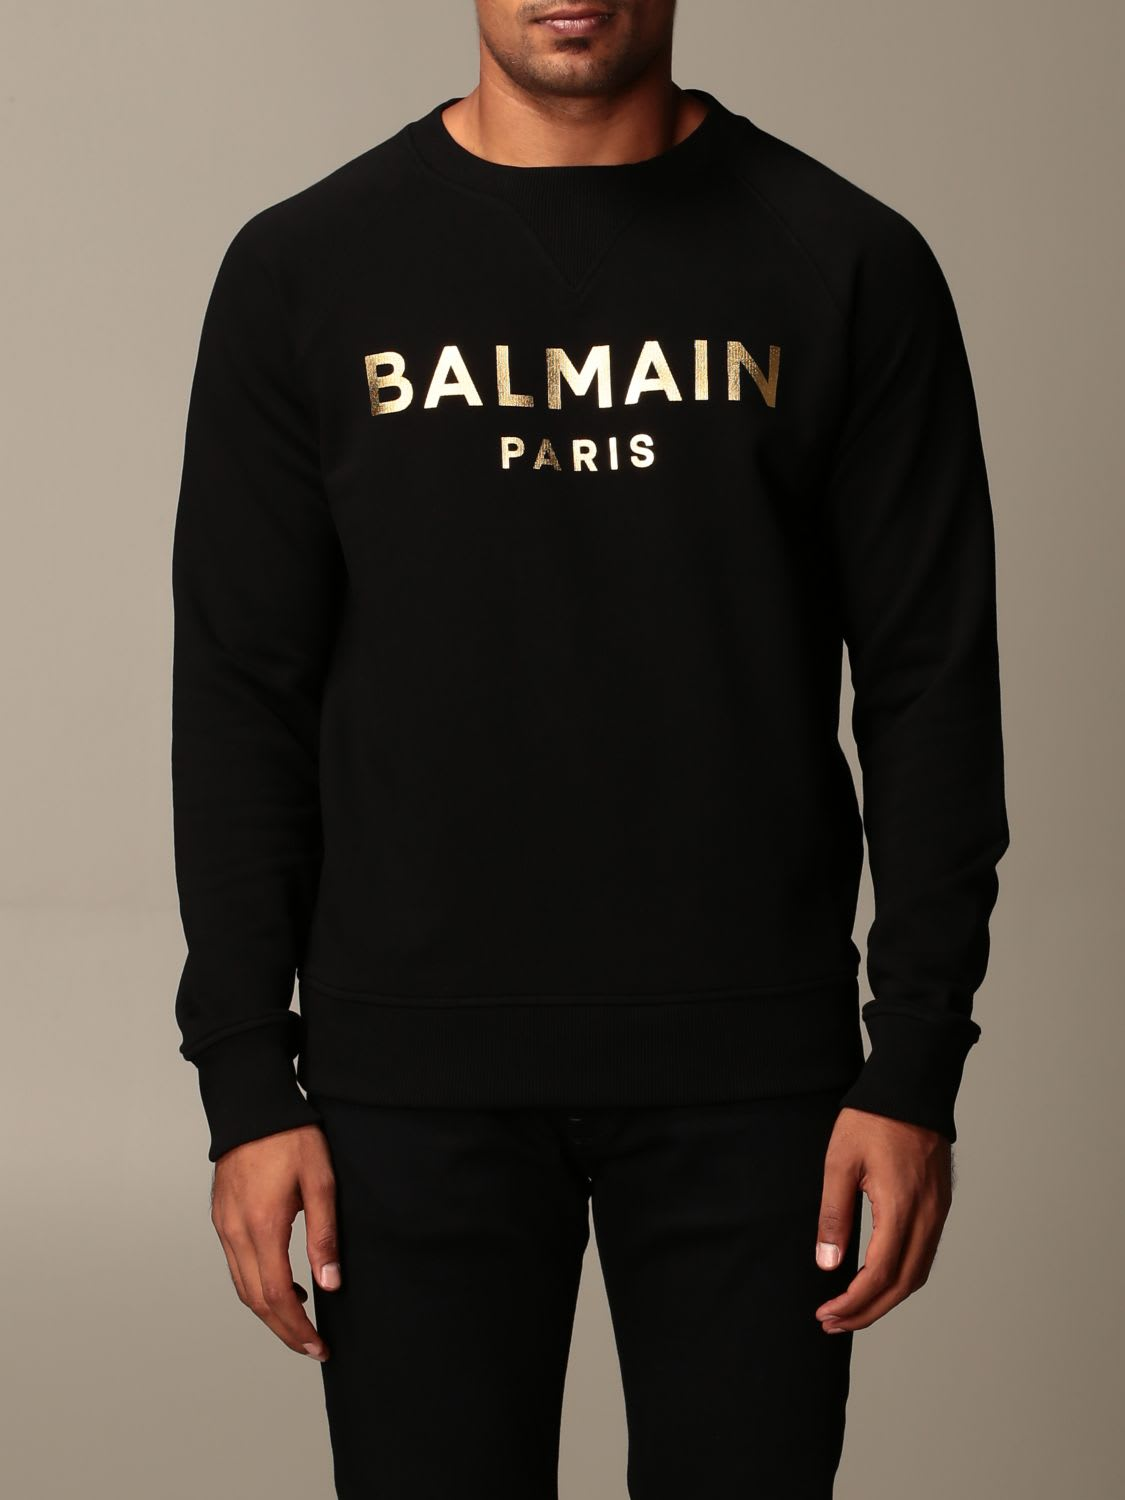 Balmain Sweatshirt Balmain Cotton Sweatshirt With Laminated Logo